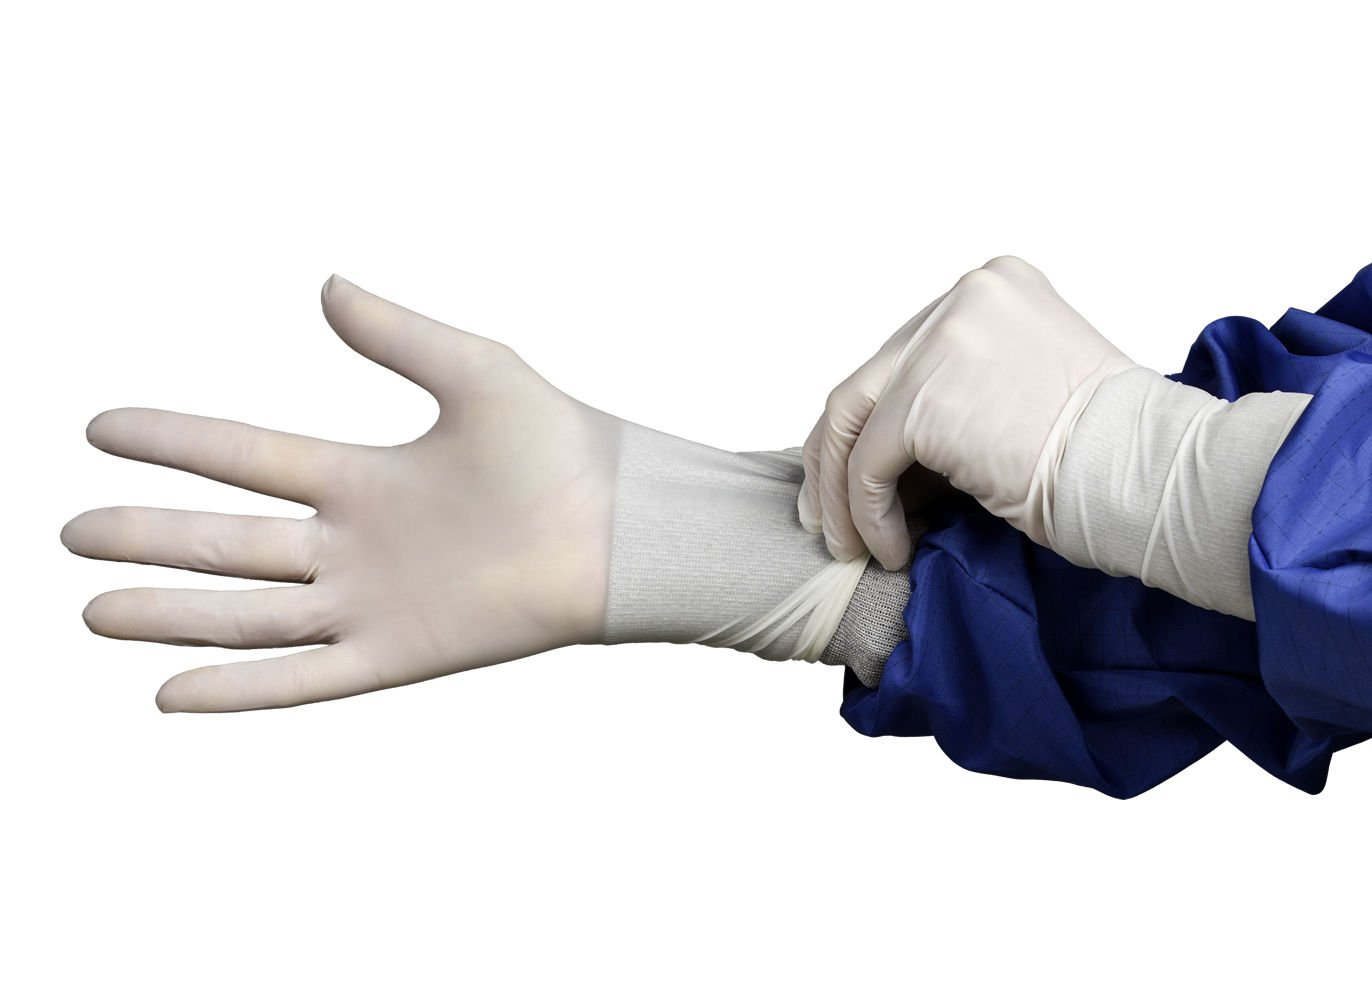 Hourglass HandPRO 9100 Nitrile Ambidextrous Cleanroom Glove, Powder Free, 290mm Length, 0.06mm Thick, X-Large (Case of 10 Bags, 100/Bag)